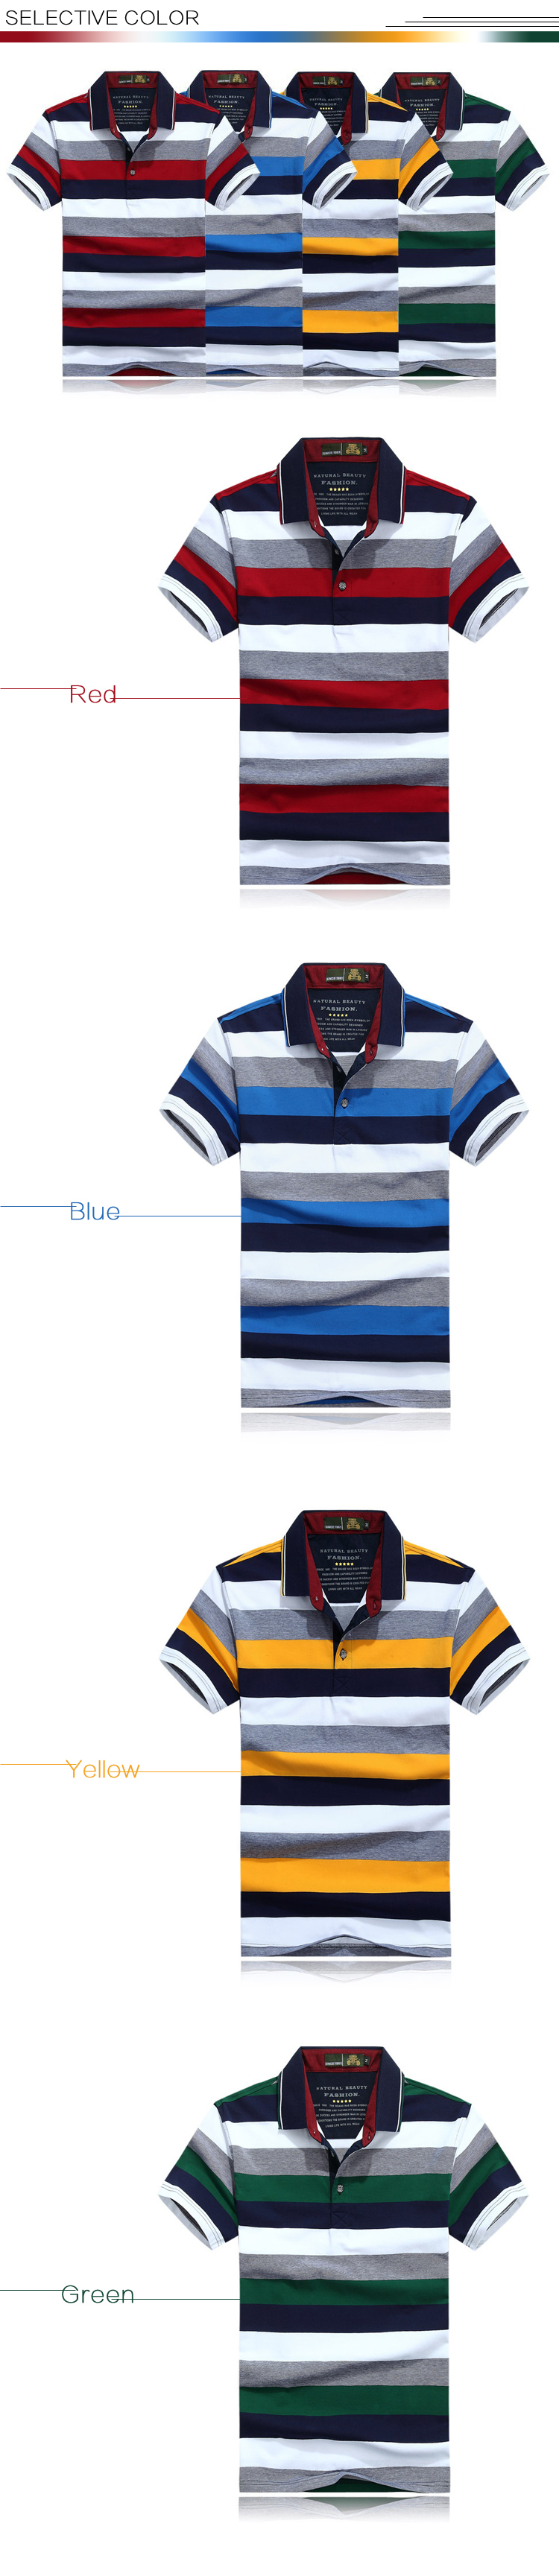 Mens Summer Casual Contrast Color Striped Printed Breathable Cotton Polo Shirt